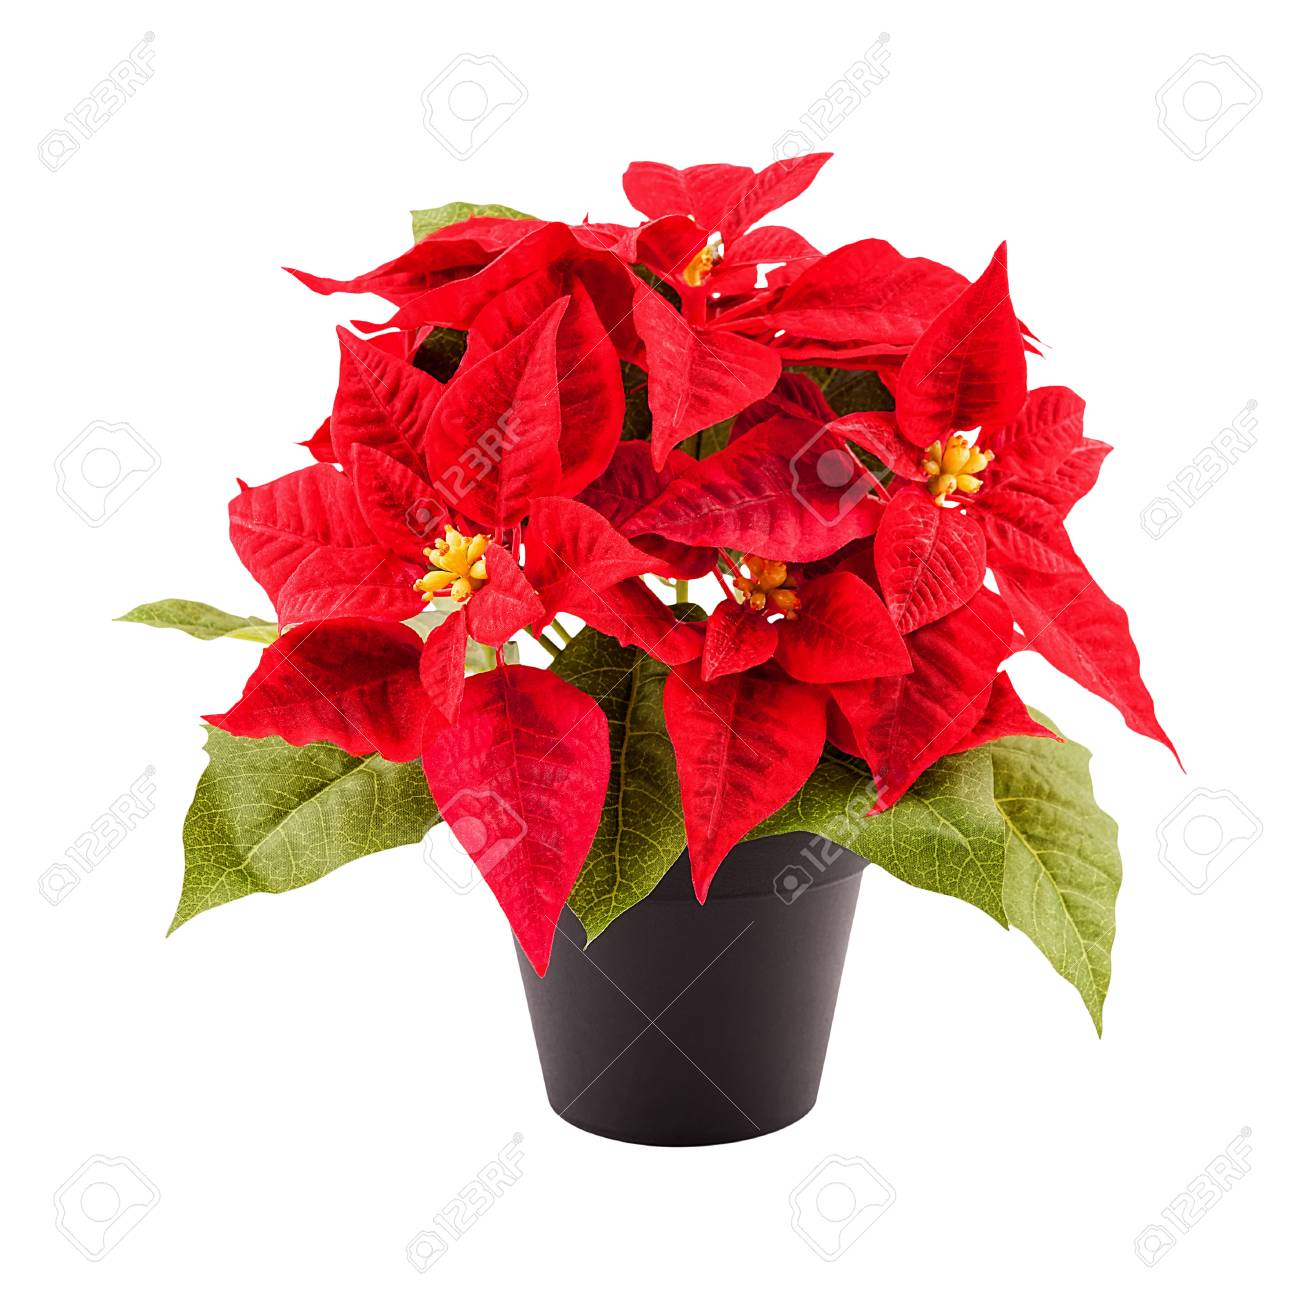 Christmas Flower Poinsettia In A Pot Isolated On White Stock Photo Picture And Royalty Free Image Image 88503198